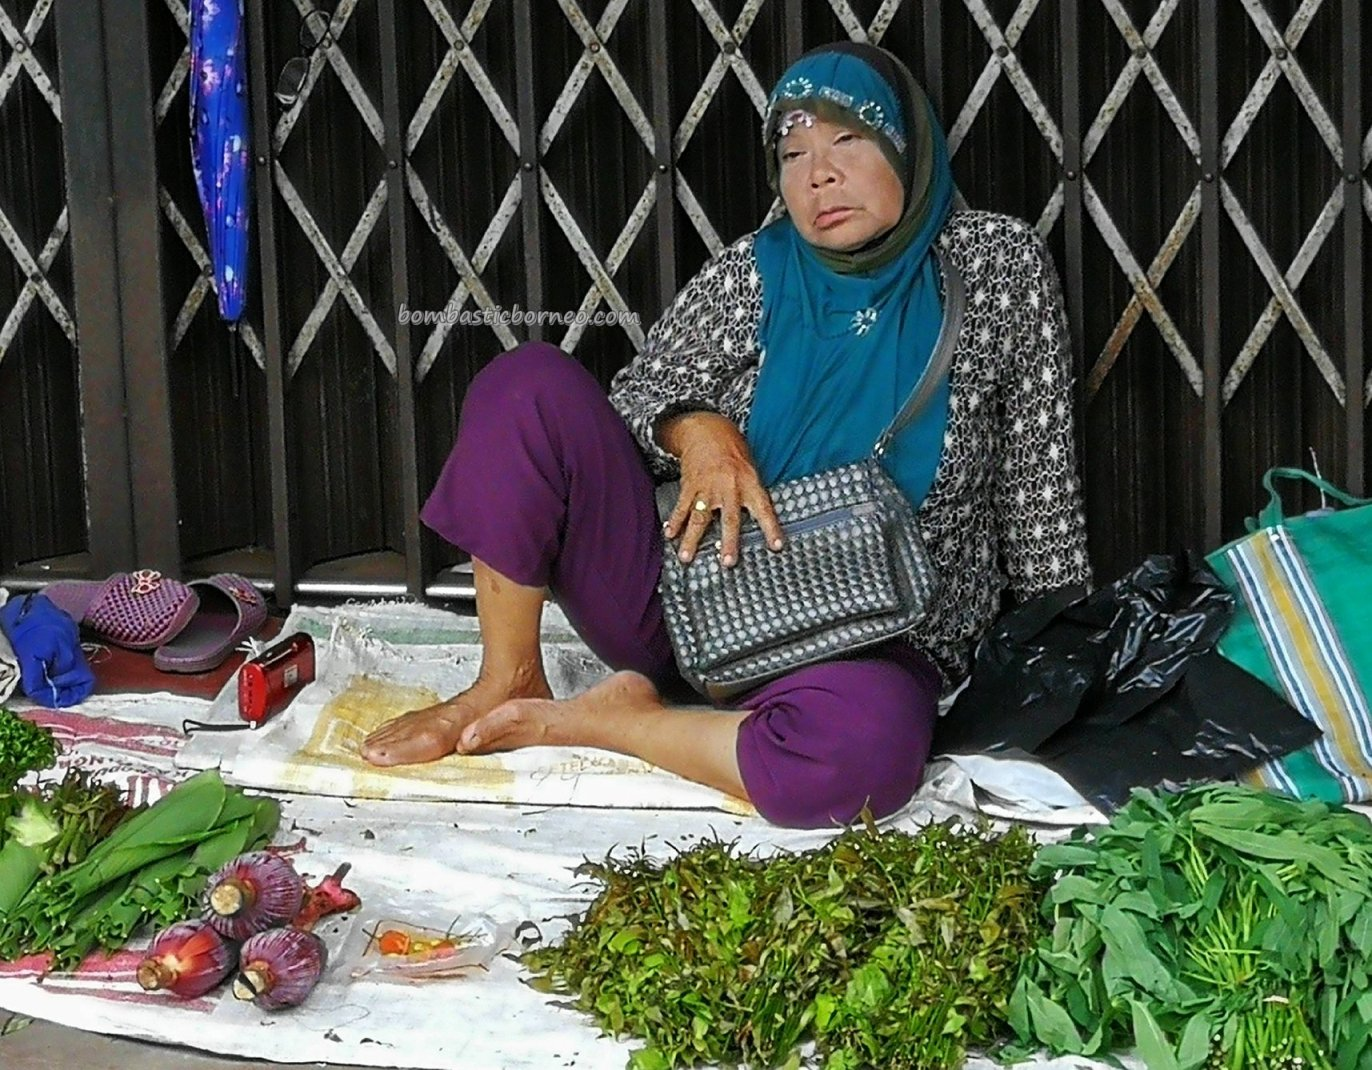 Pasar Sayur, authentic, backpackers, destination, Dayak Melayik, native, malay, Indonesia, Obyek wisata, Tourism, tourist attraction, town, travel guide, crossborder, 西加里曼丹婆羅洲